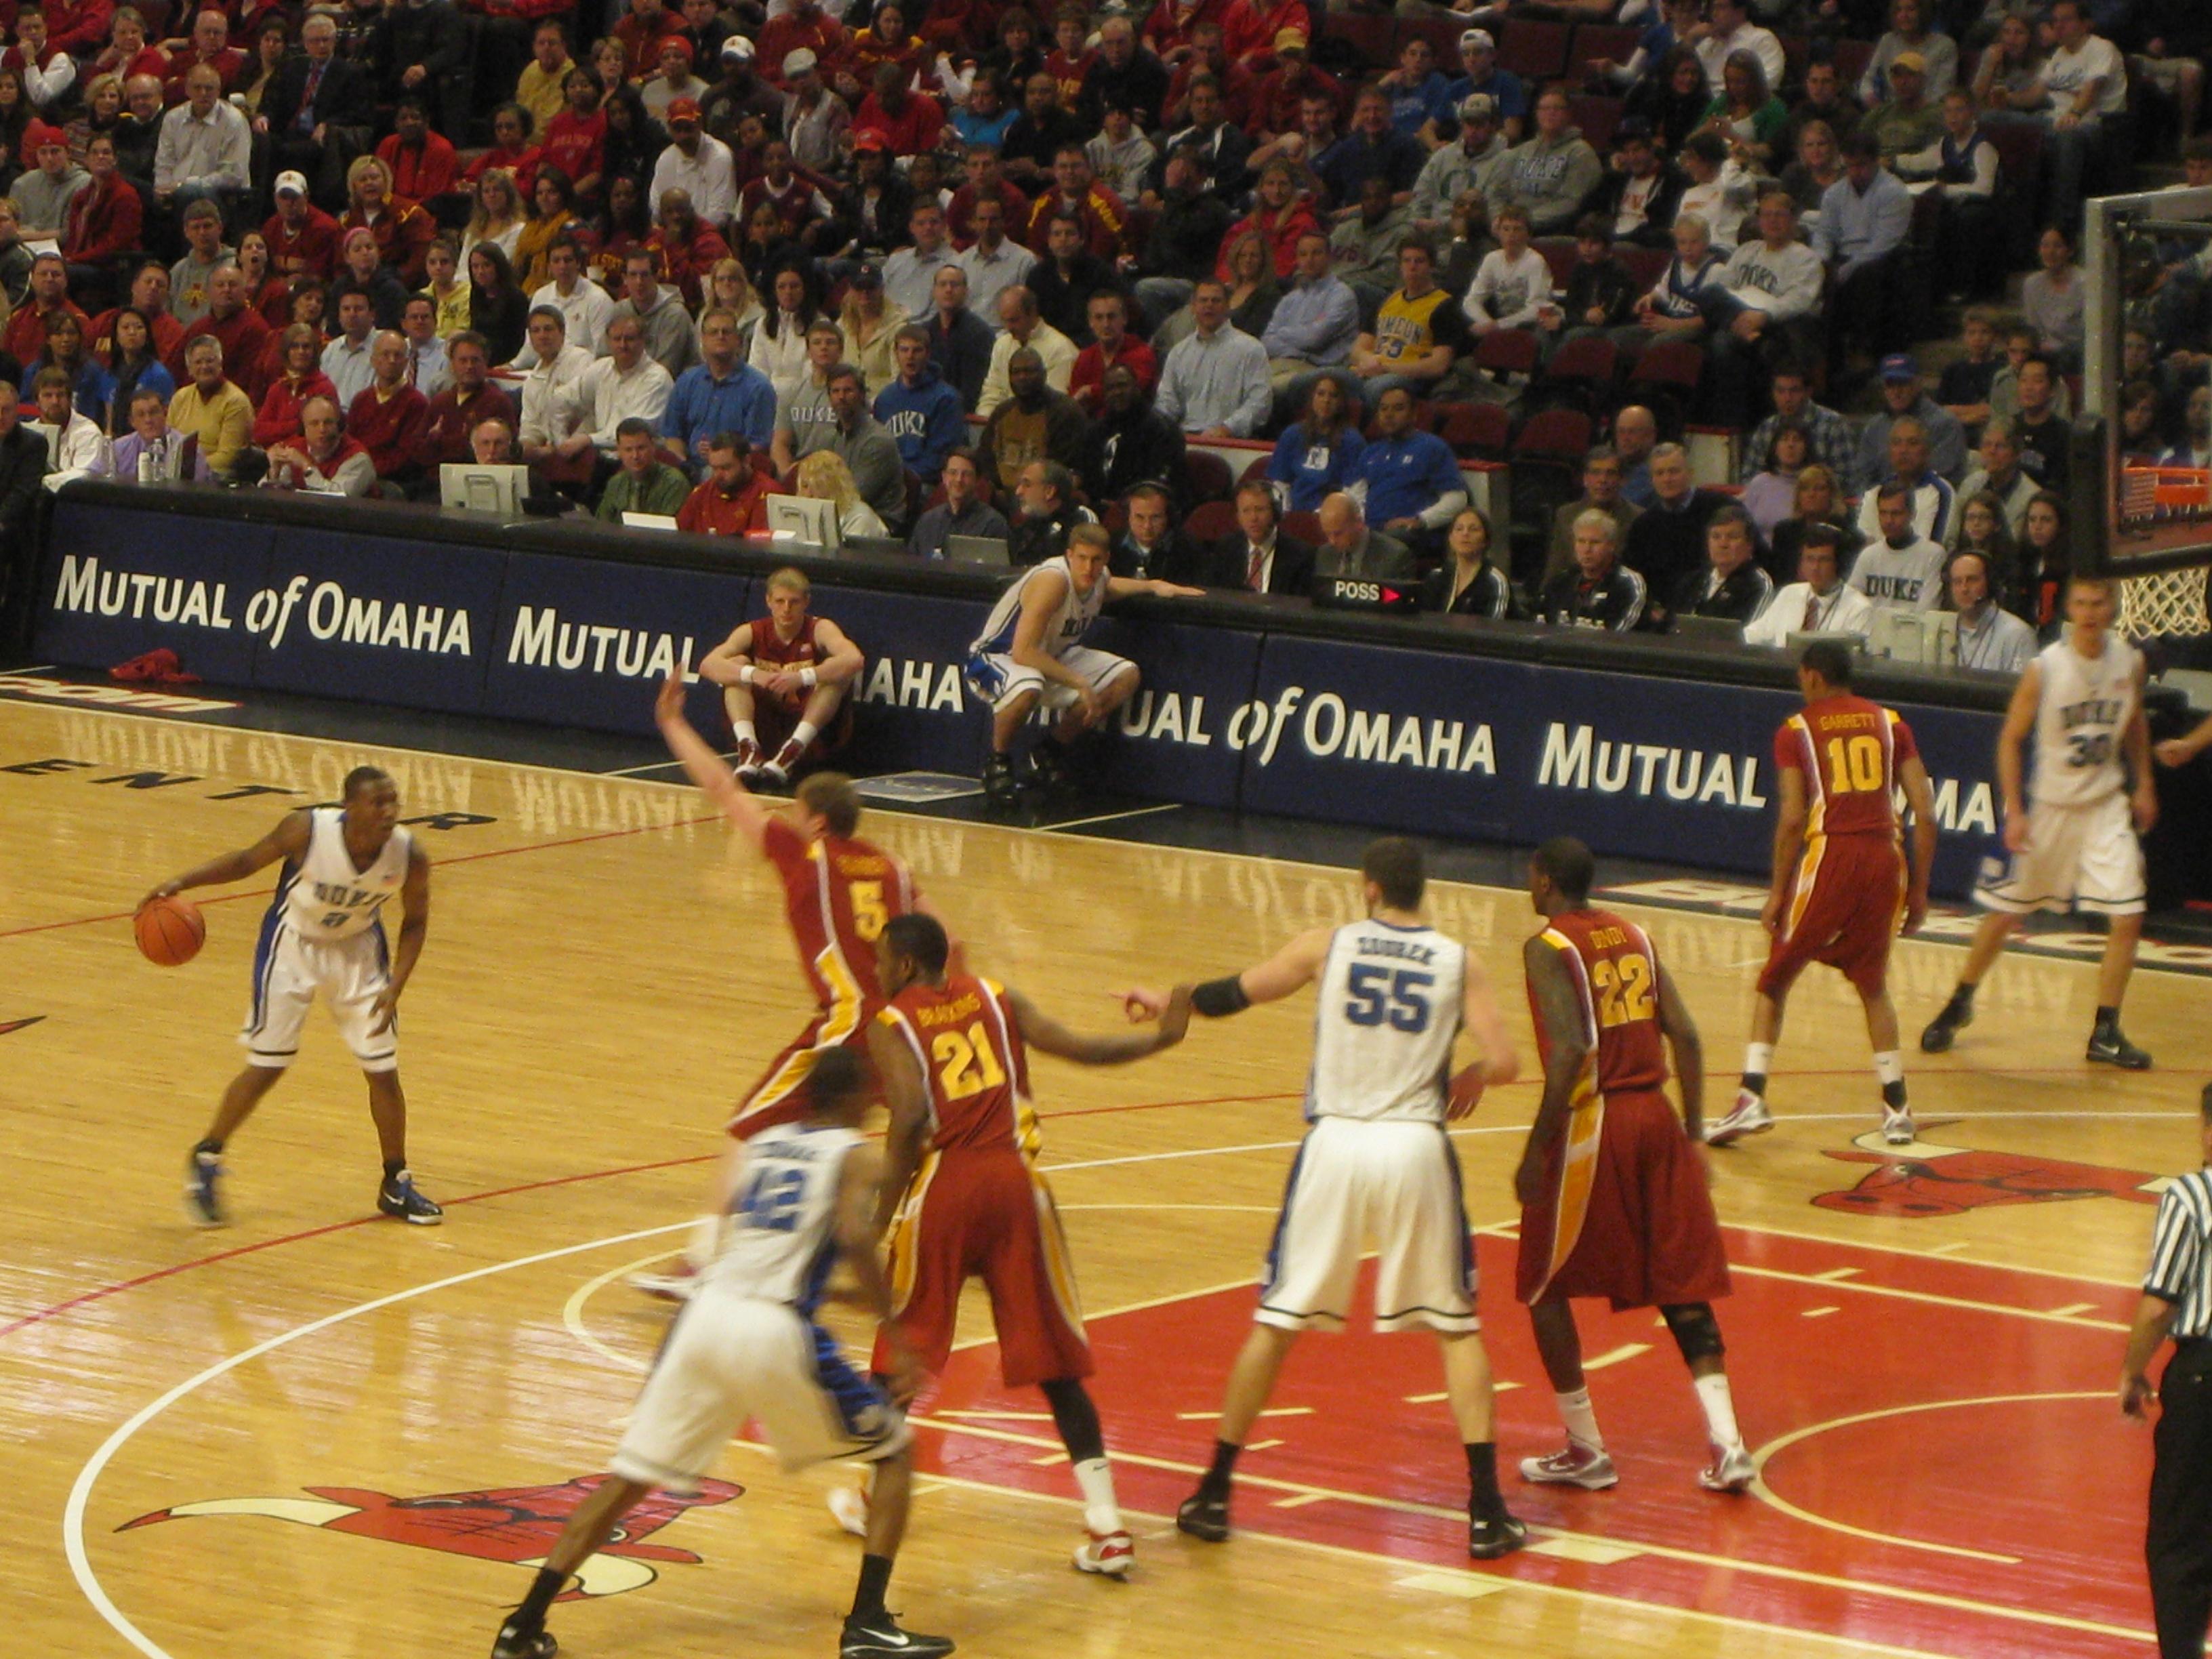 iowa state university basketball schedule